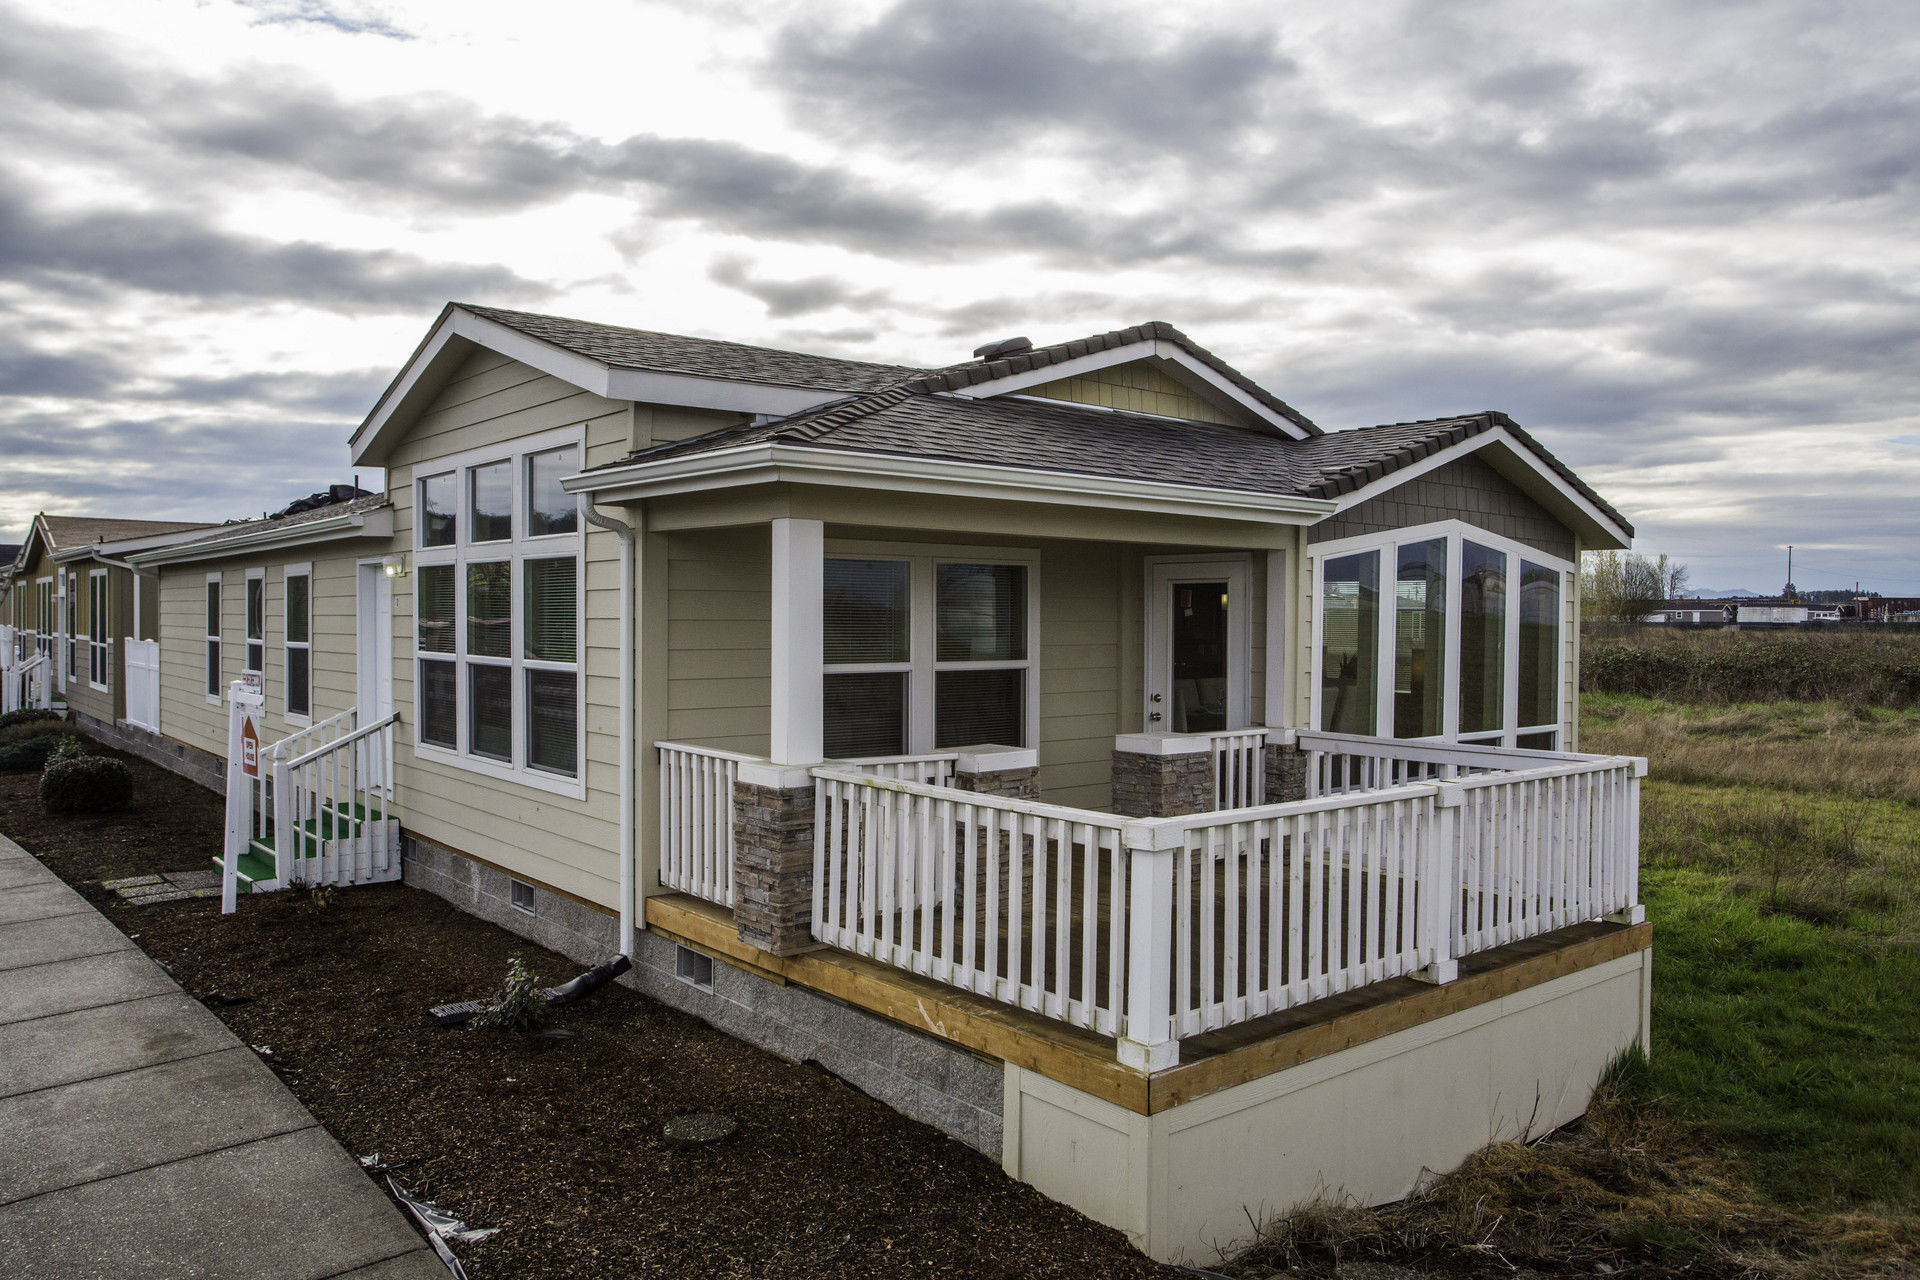 PR5A4593 Palm Harbor Manufactured Home Floor Plan on